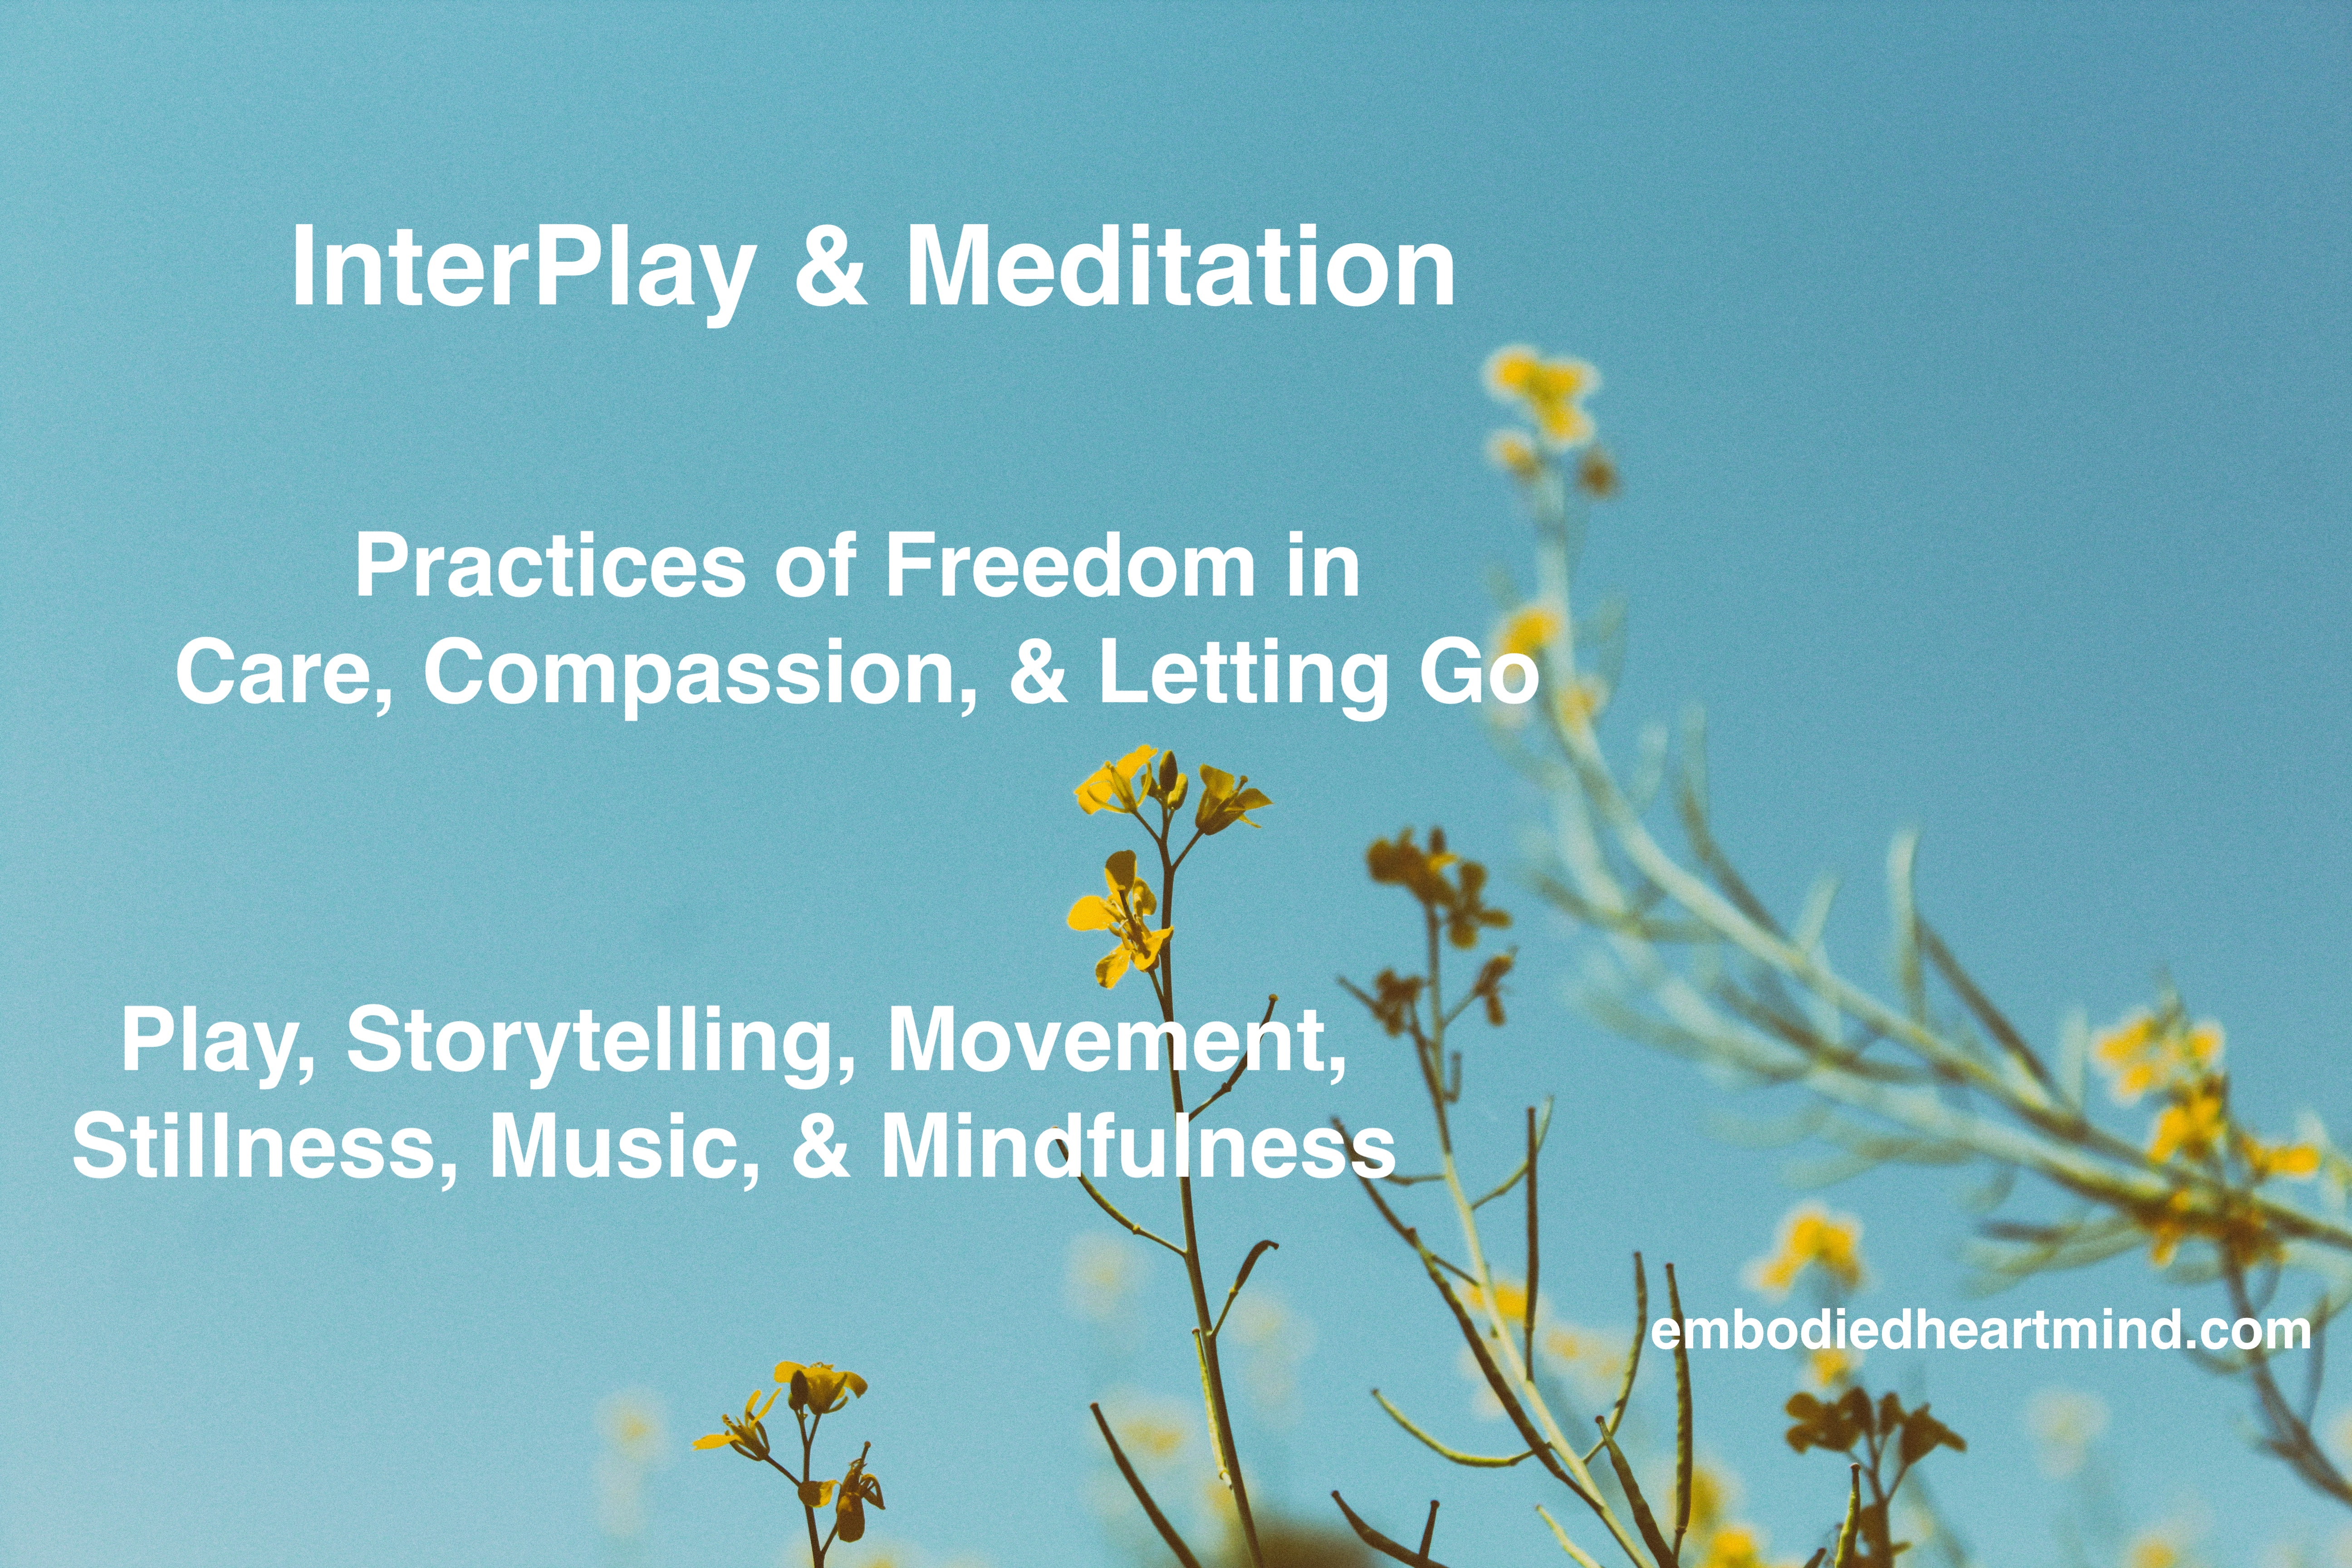 How Mindfulness And Storytelling Help >> Embodied Play Mindfulness And Storytelling Baristanet